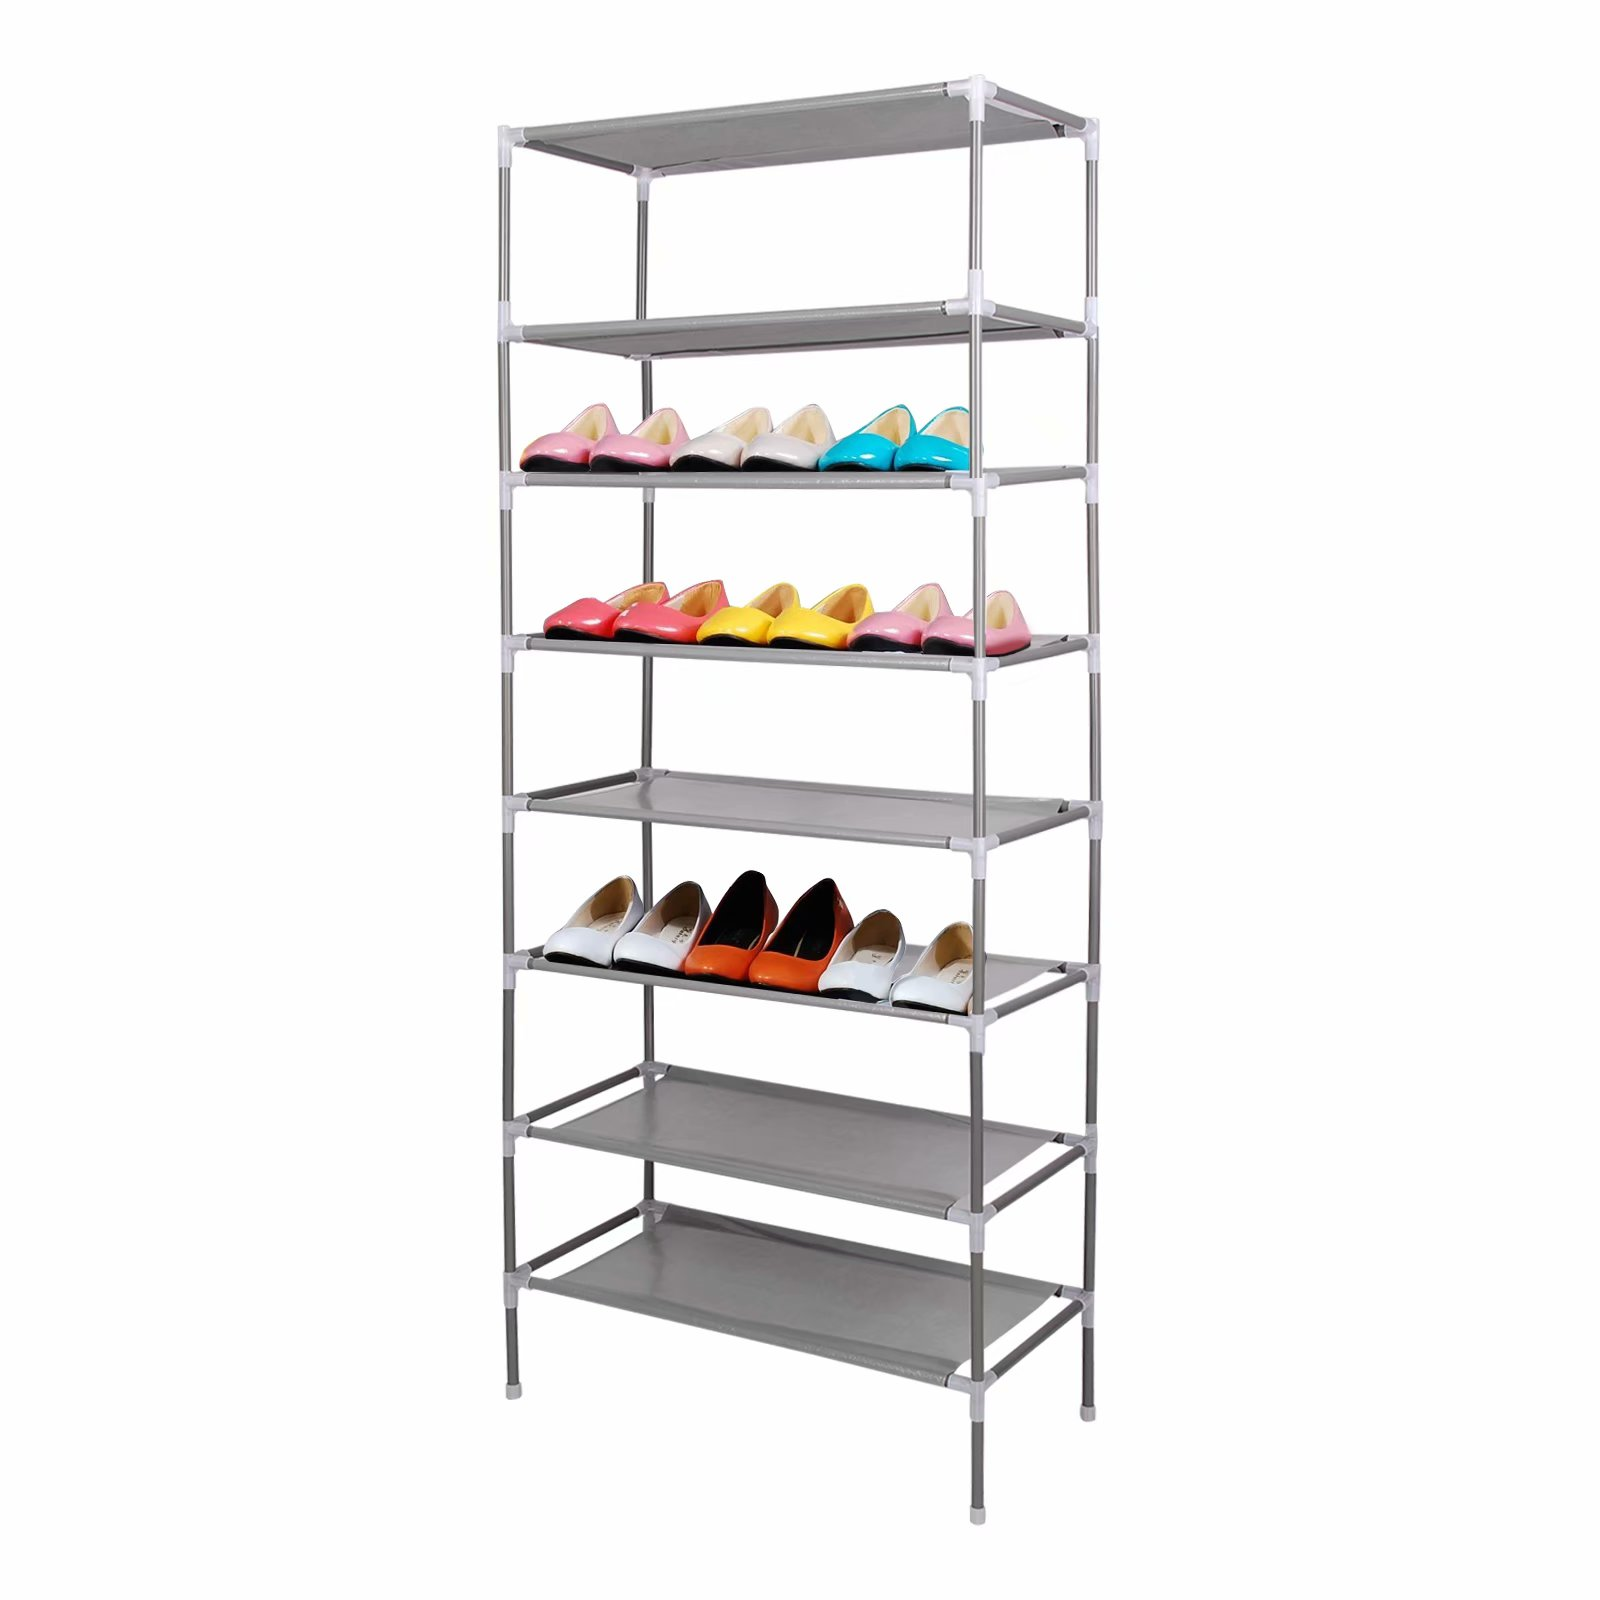 Non-Woven Fabric Dustproof Shoe Rack Storage Organizer Cover Cabinet Shelf Cabinet 6/12/18/24/30 Pairs Home Furniture